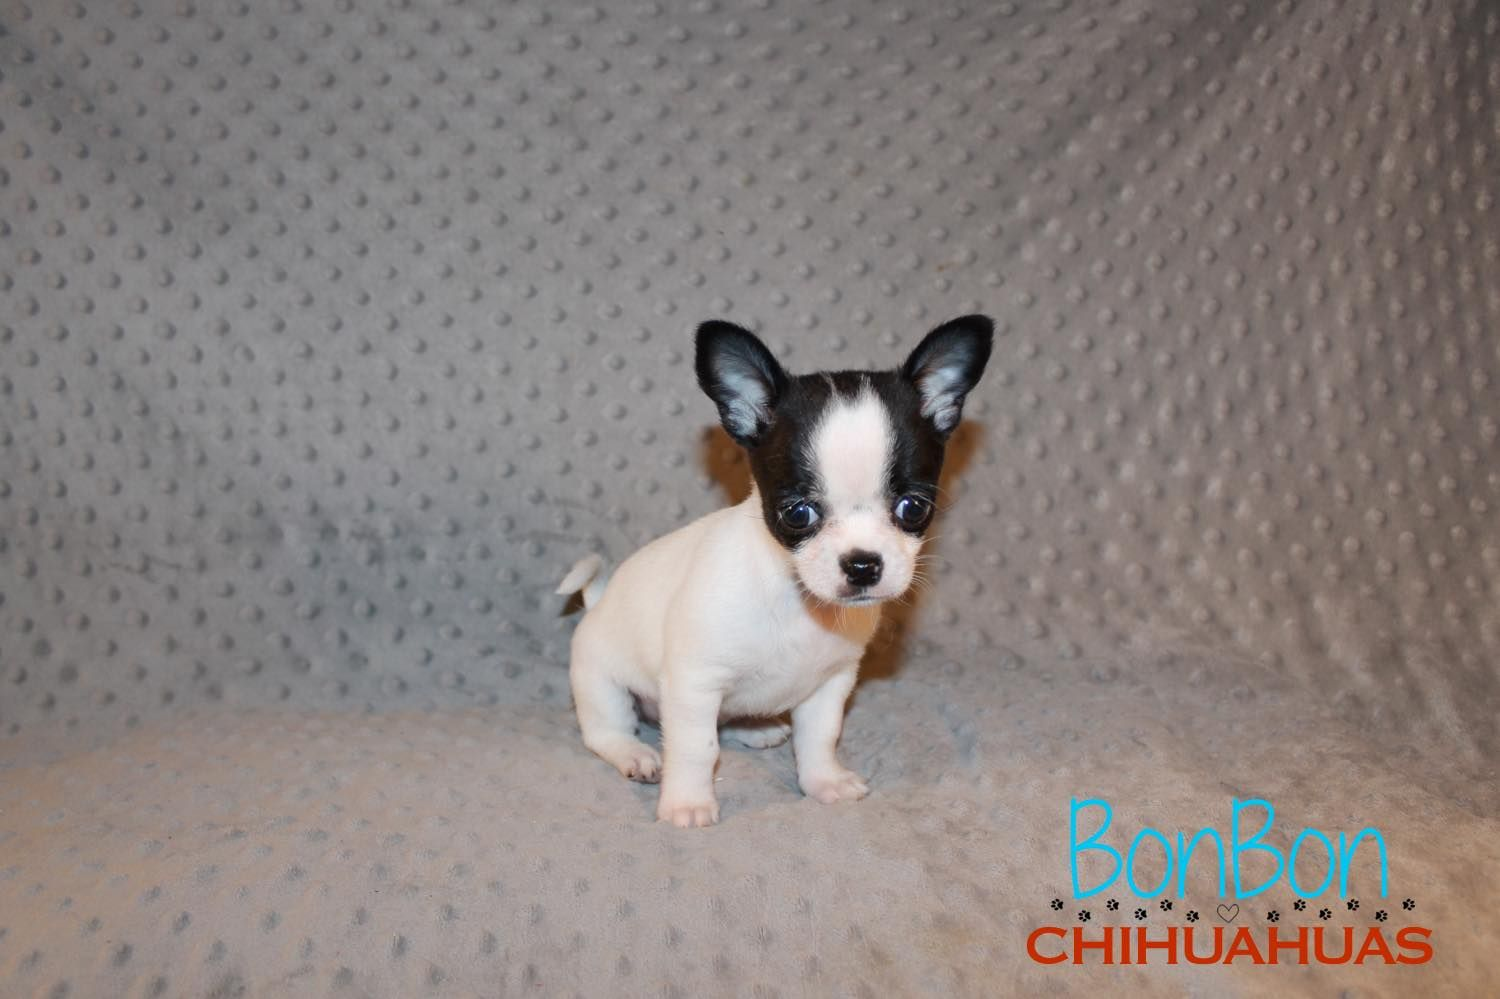 Chihuahua Puppies For Sale Dogs Chihuahua Puppies For Sale